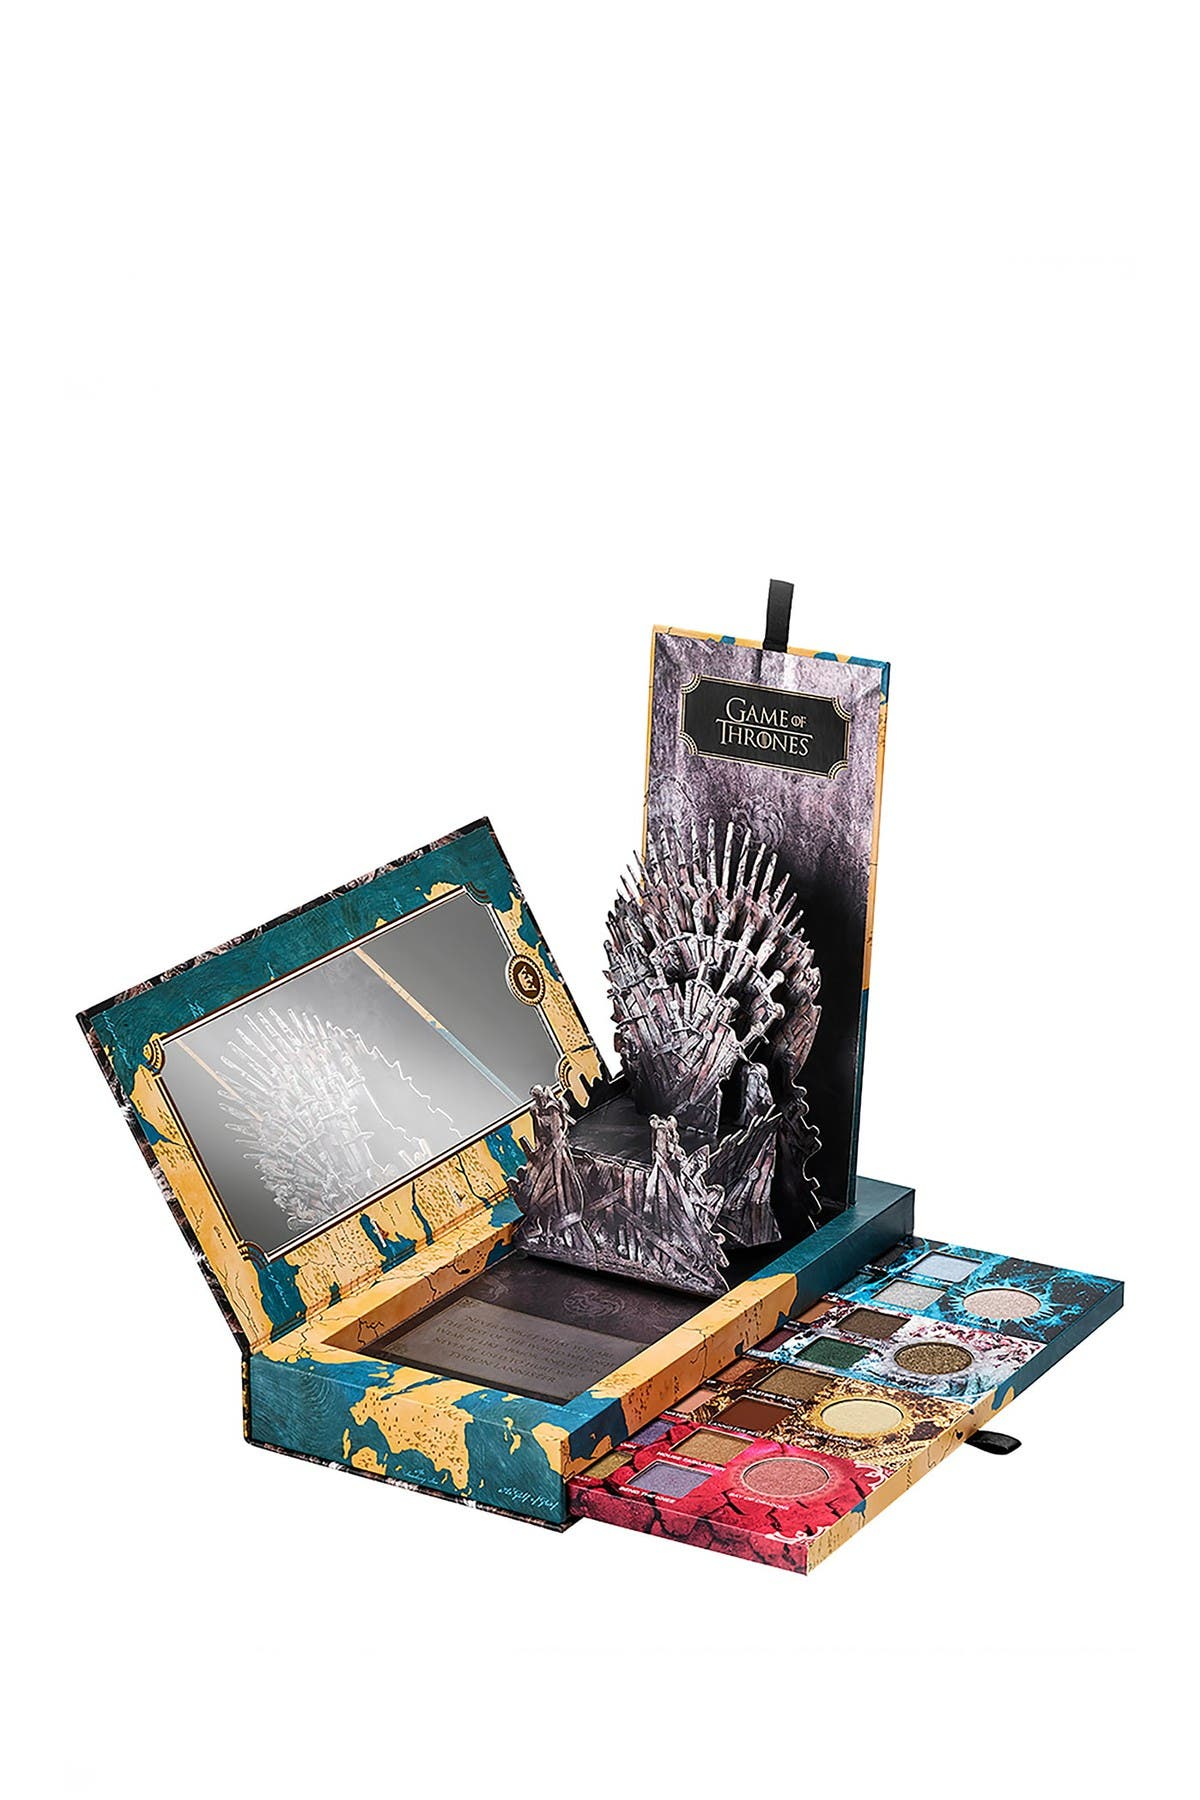 Image of Urban Decay Game of Thrones Eyeshadow Palette